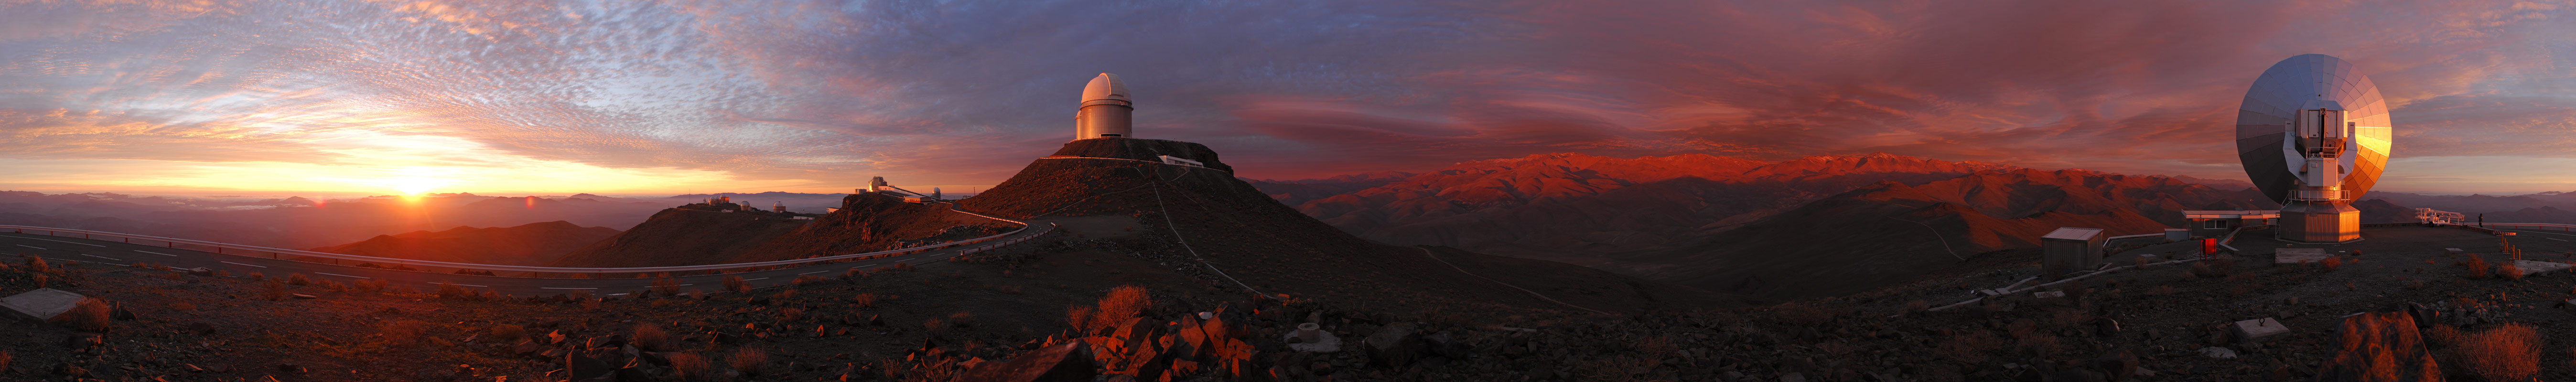 cb8d8b892a4 Stunning panoramic sunset from the La Silla observatory in Chile.